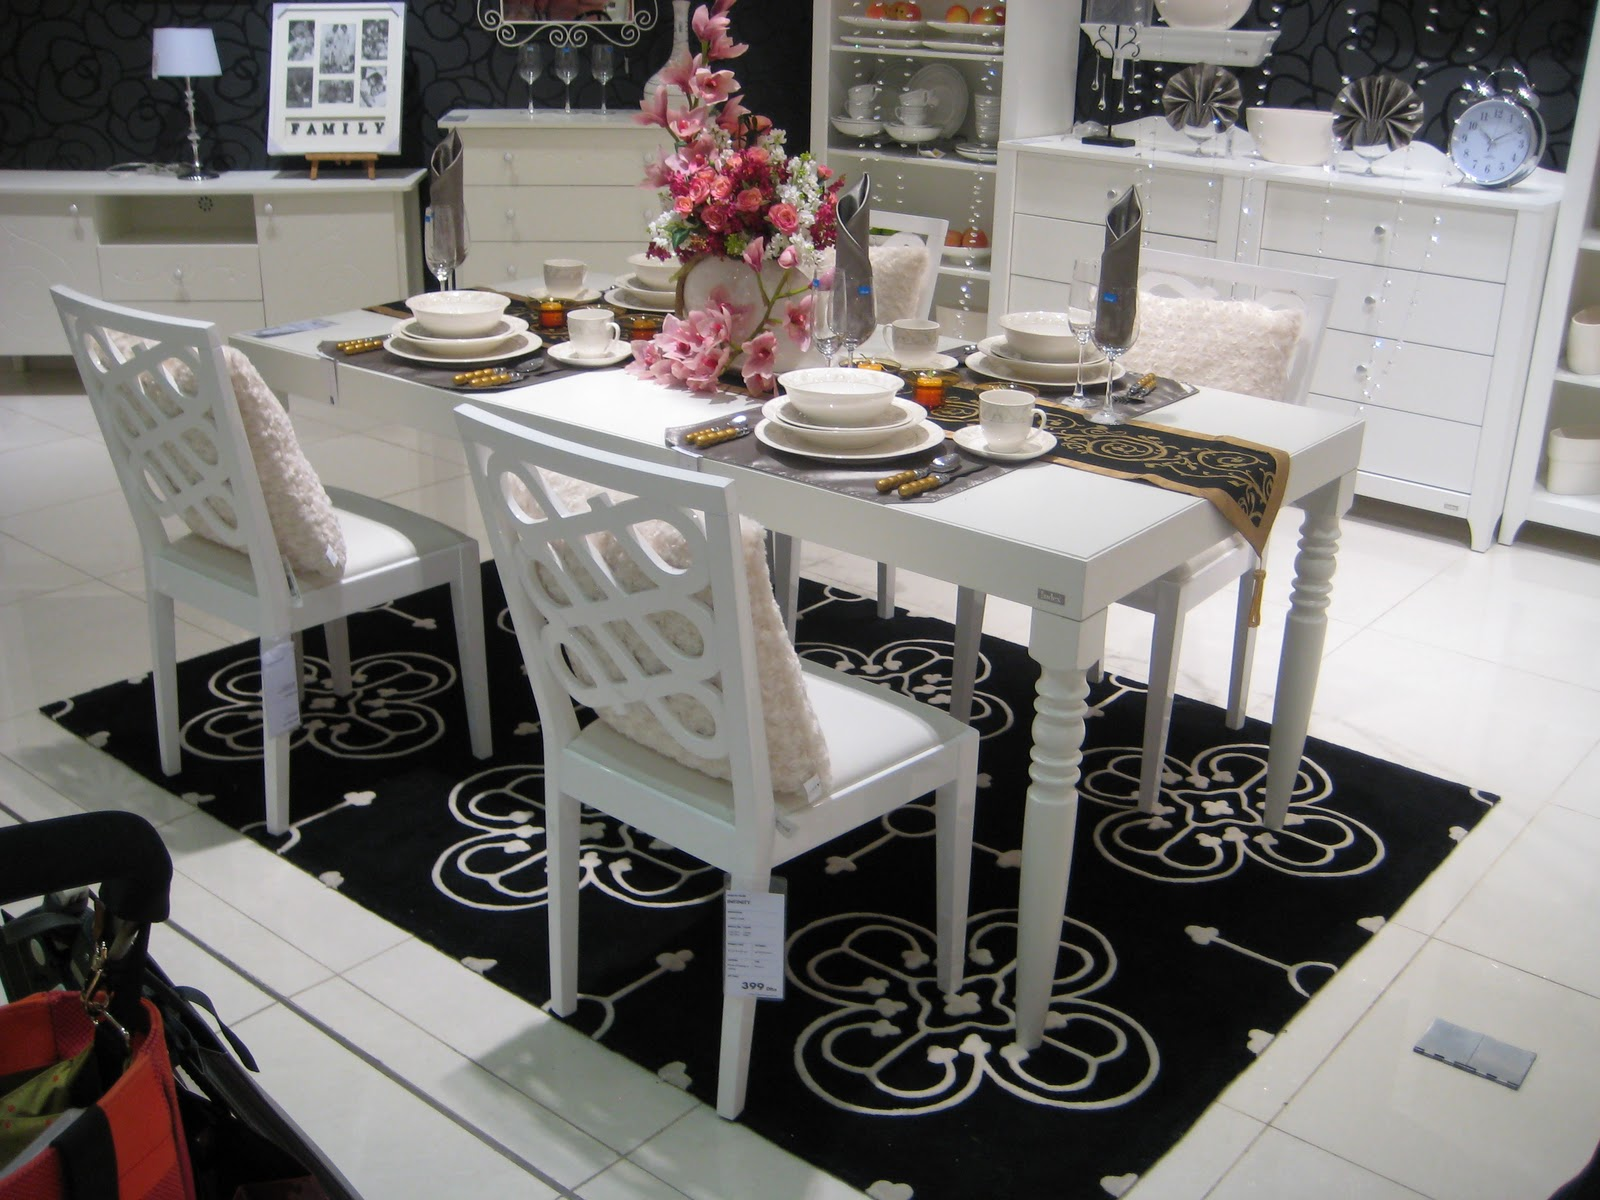 Ikea Home Decor Dubai: Secrets Of A Dubai Designer